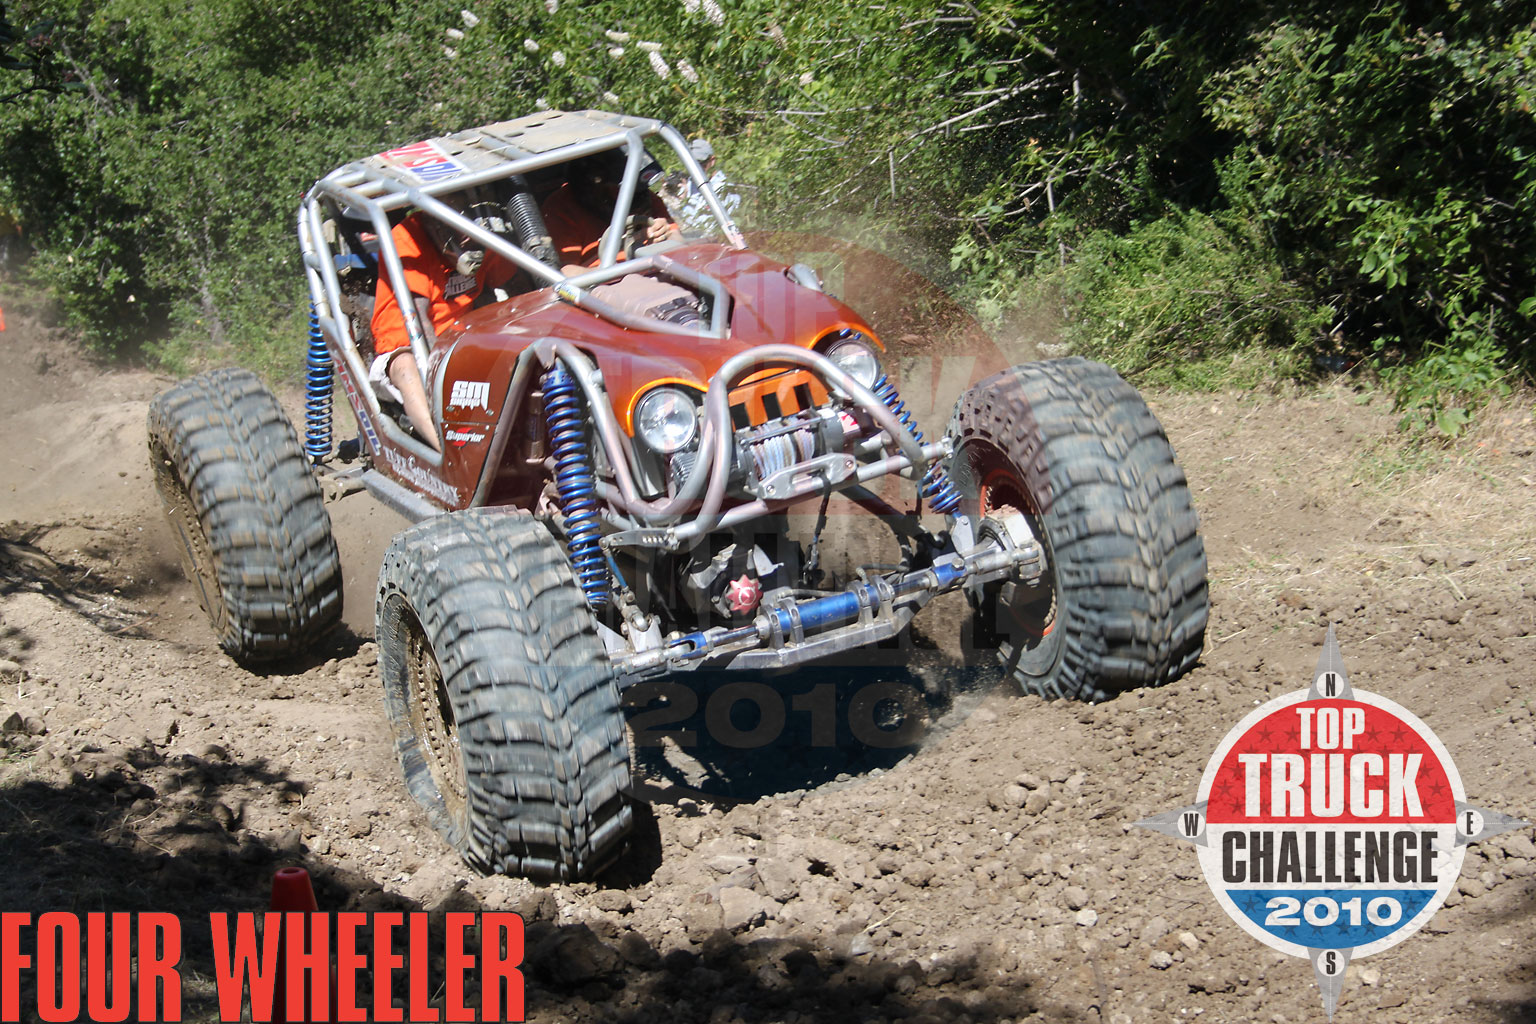 129 1006 4818+2010 top truck challenge hill climb+leo kuether 2007 cole works fat girl buggy